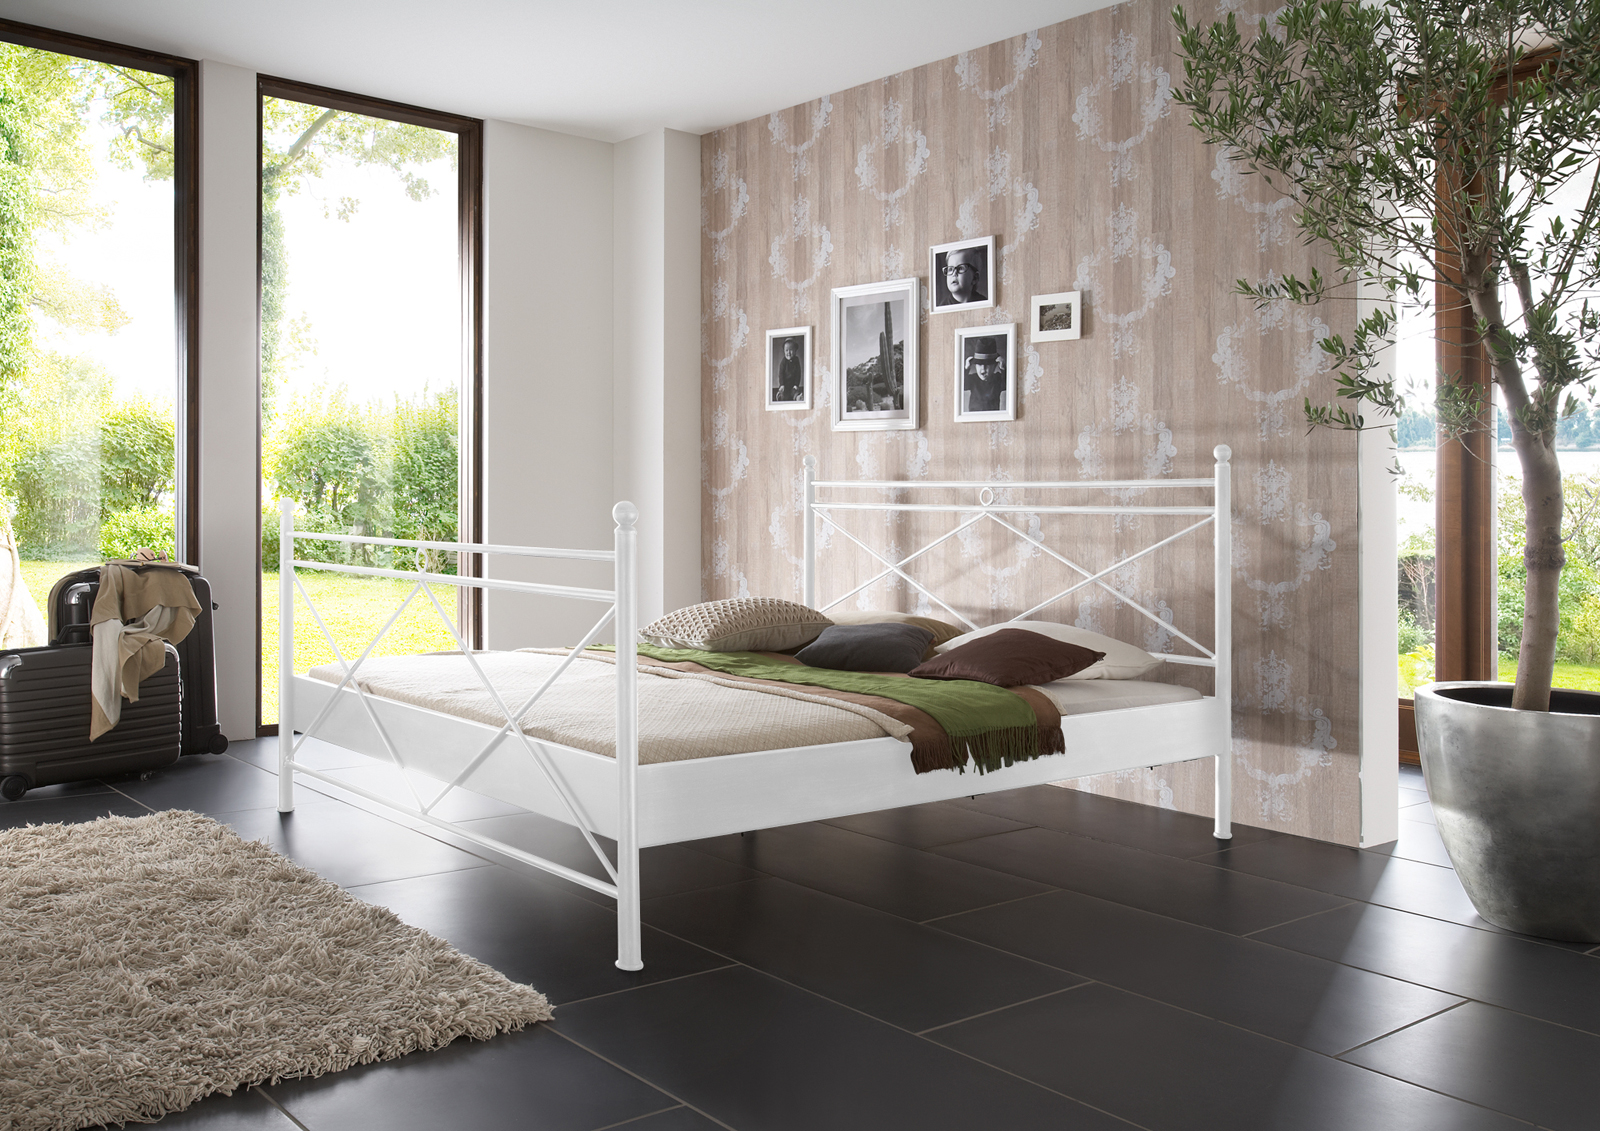 sam metallbett wei 180 x 200 cm imola g nstig. Black Bedroom Furniture Sets. Home Design Ideas